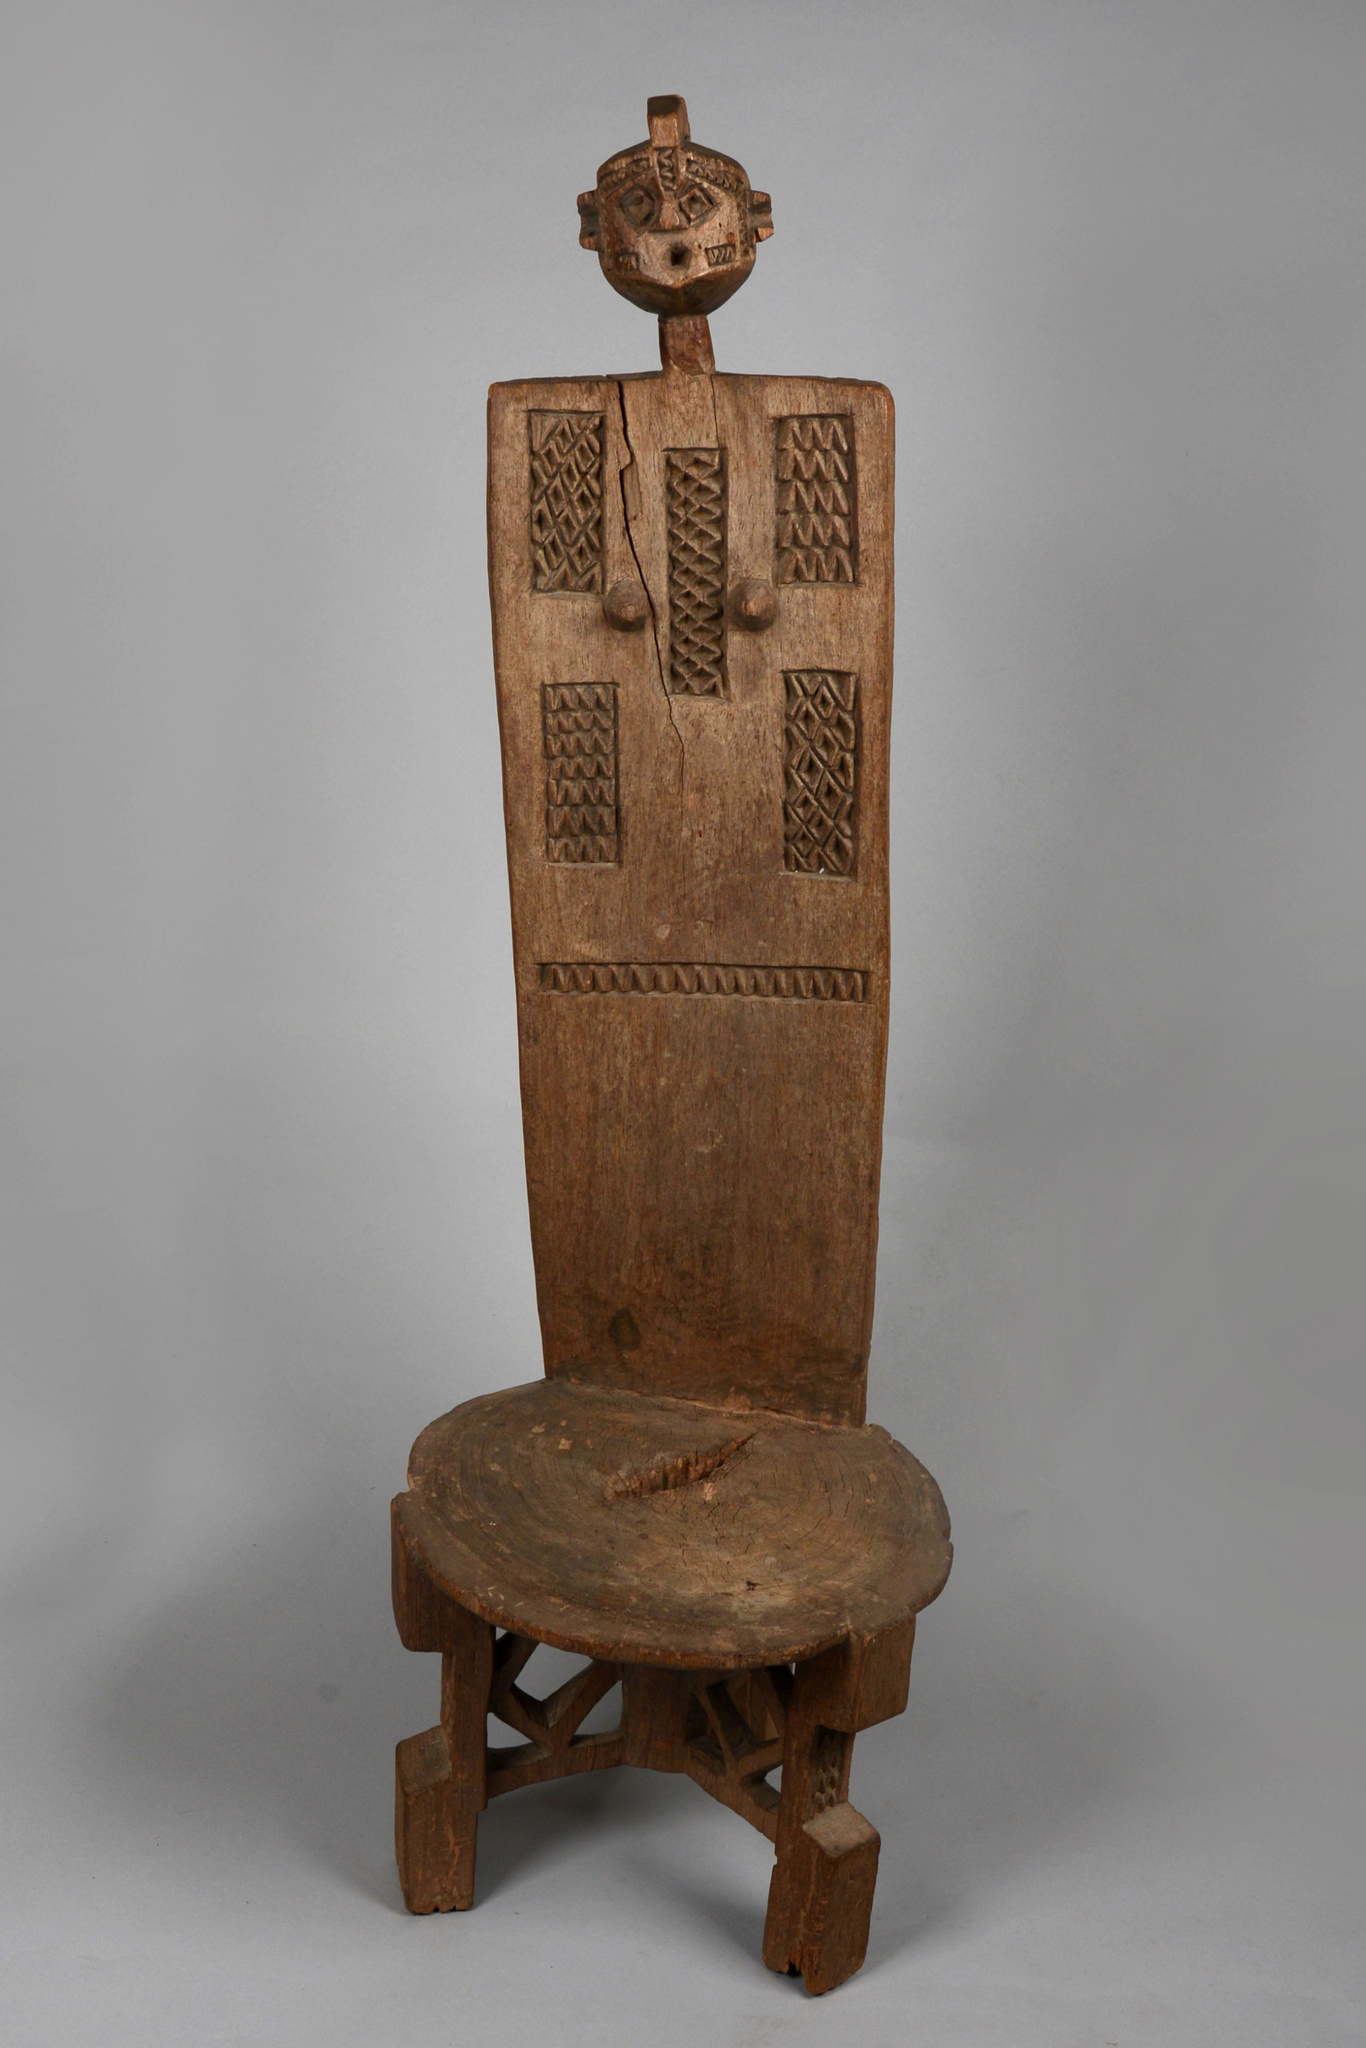 Throne stool with high backrest